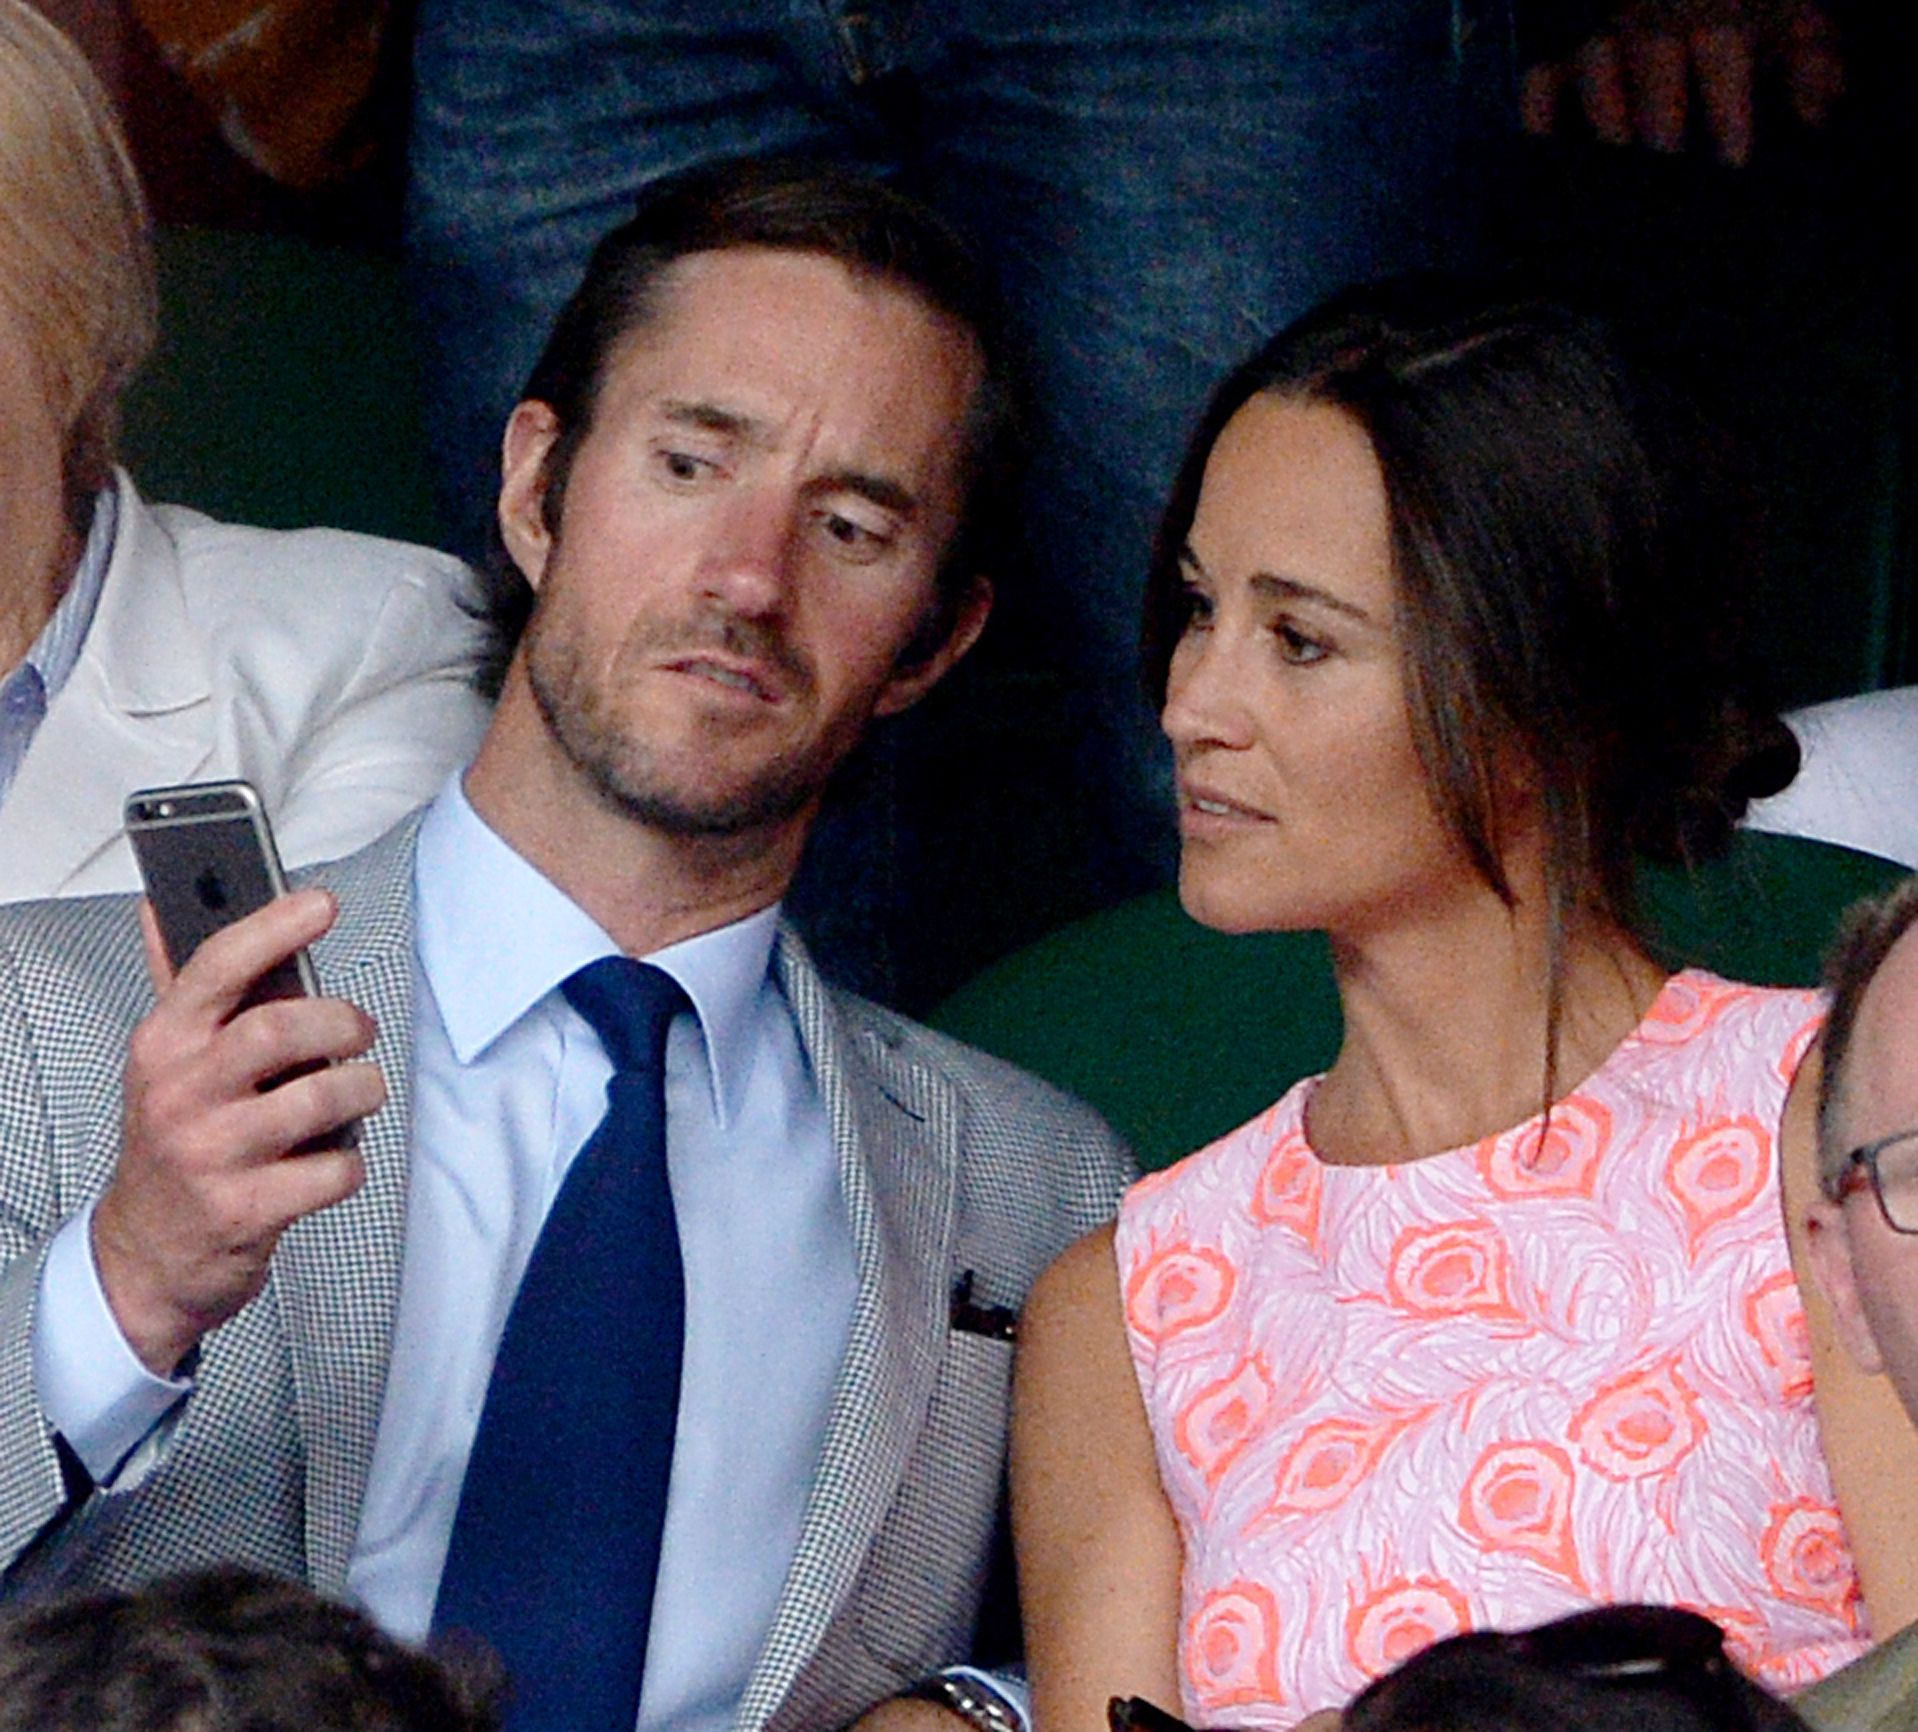 Pippa Middleton Reportedly Has 3,000 Photos Stolen By